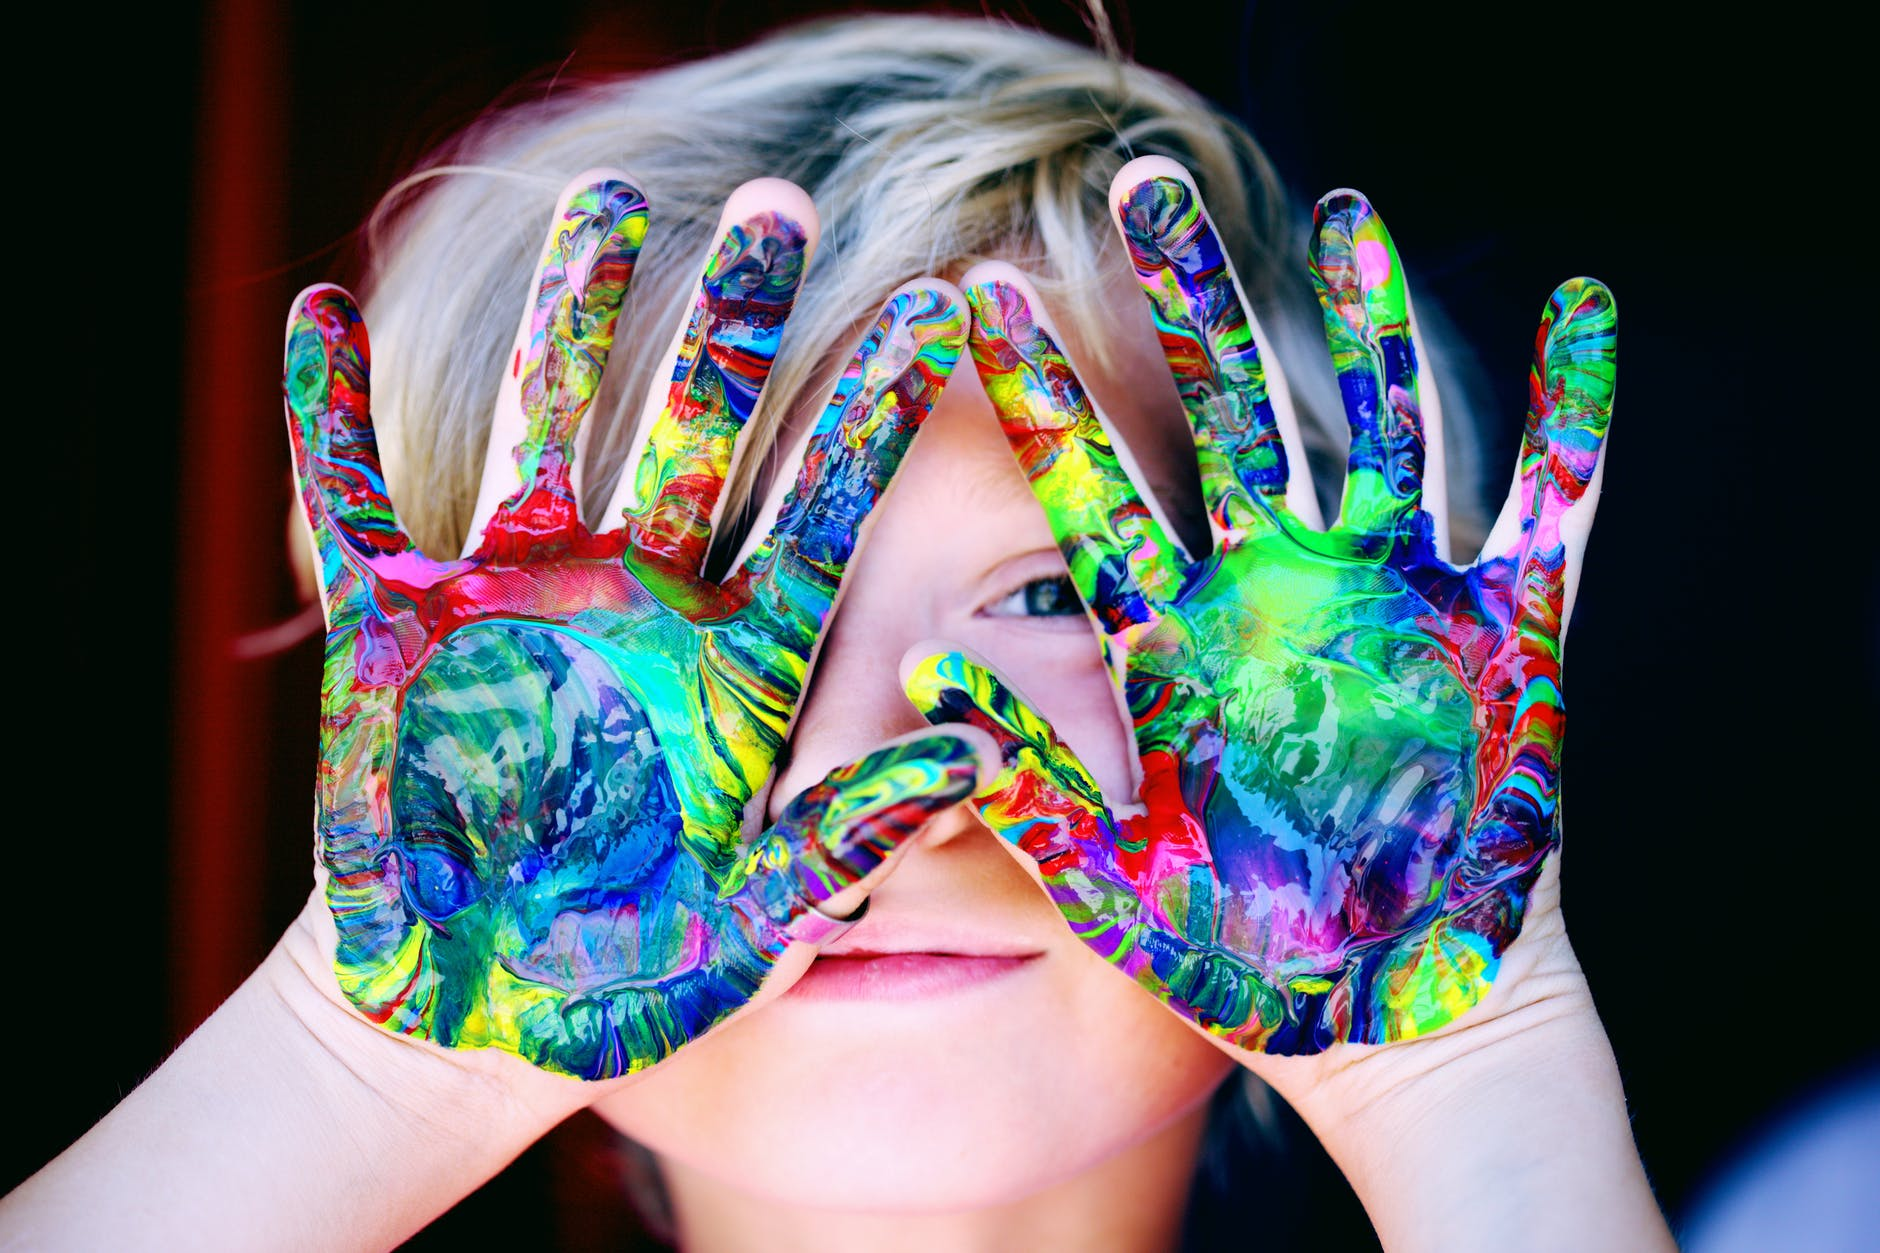 Child holding his hands up.  Hands are covered in multiple paint colors including red, green, blue, purples, yellow.